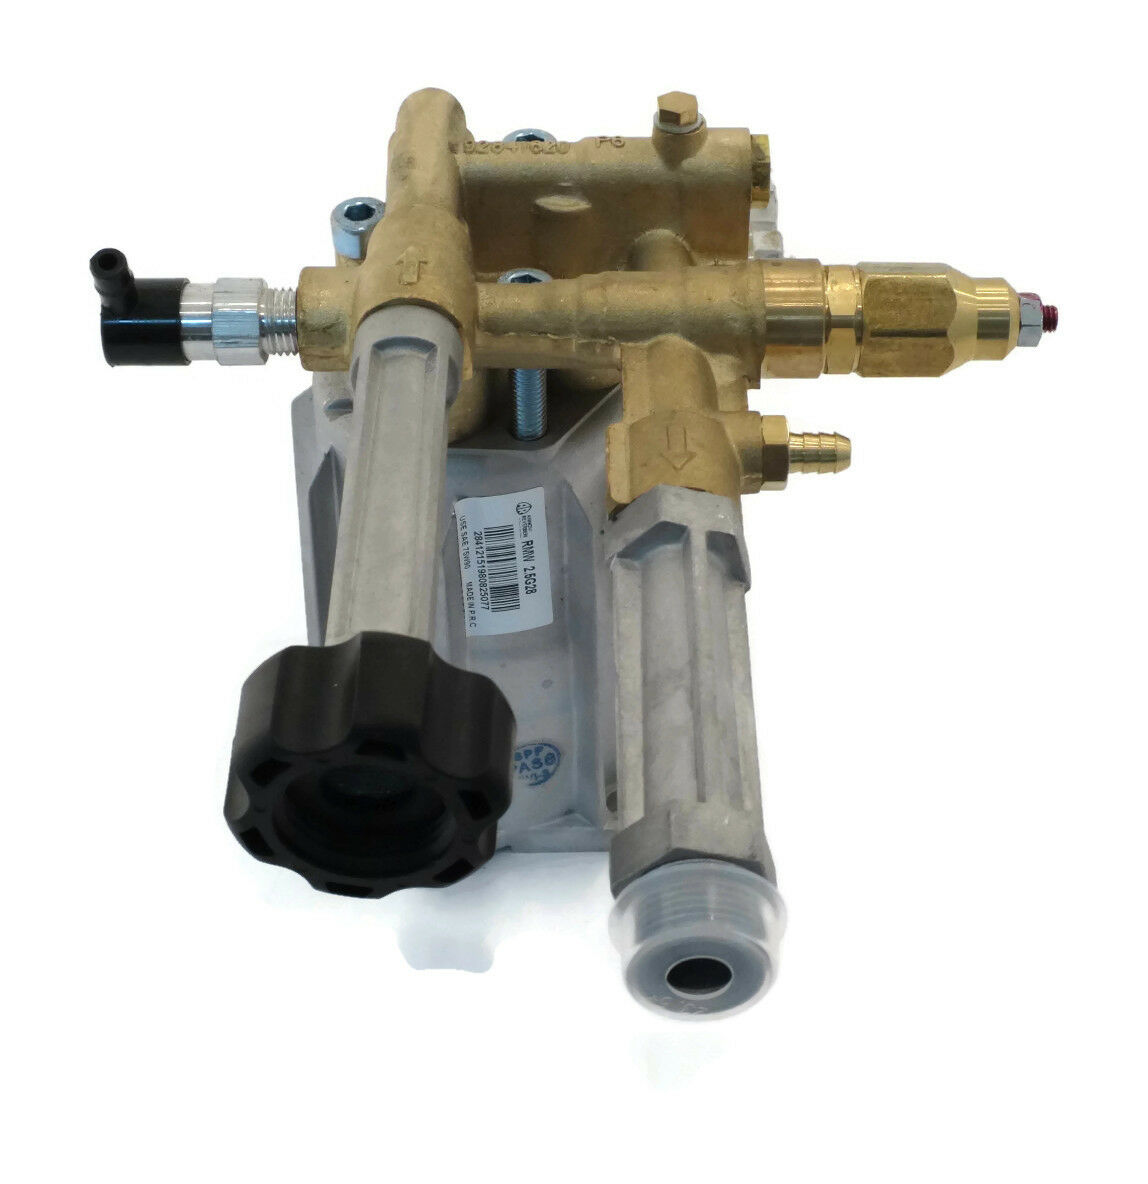 Oem Power Pressure Washer Water Pump 2600 Psi Craftsman